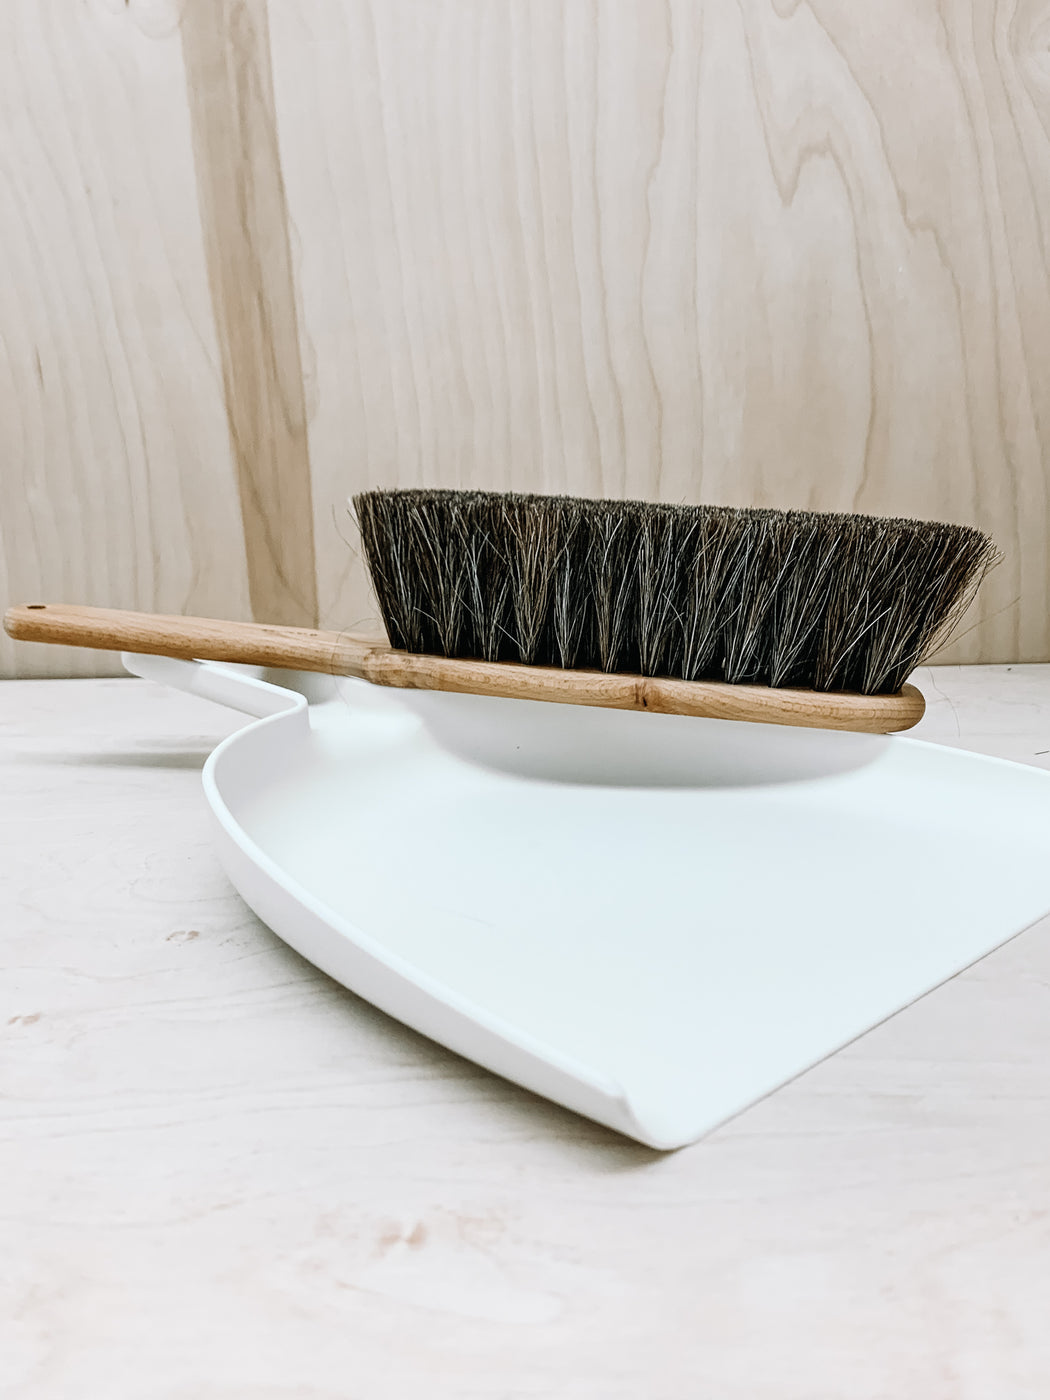 Iris Hantverk- Brush and Dust Pan Set